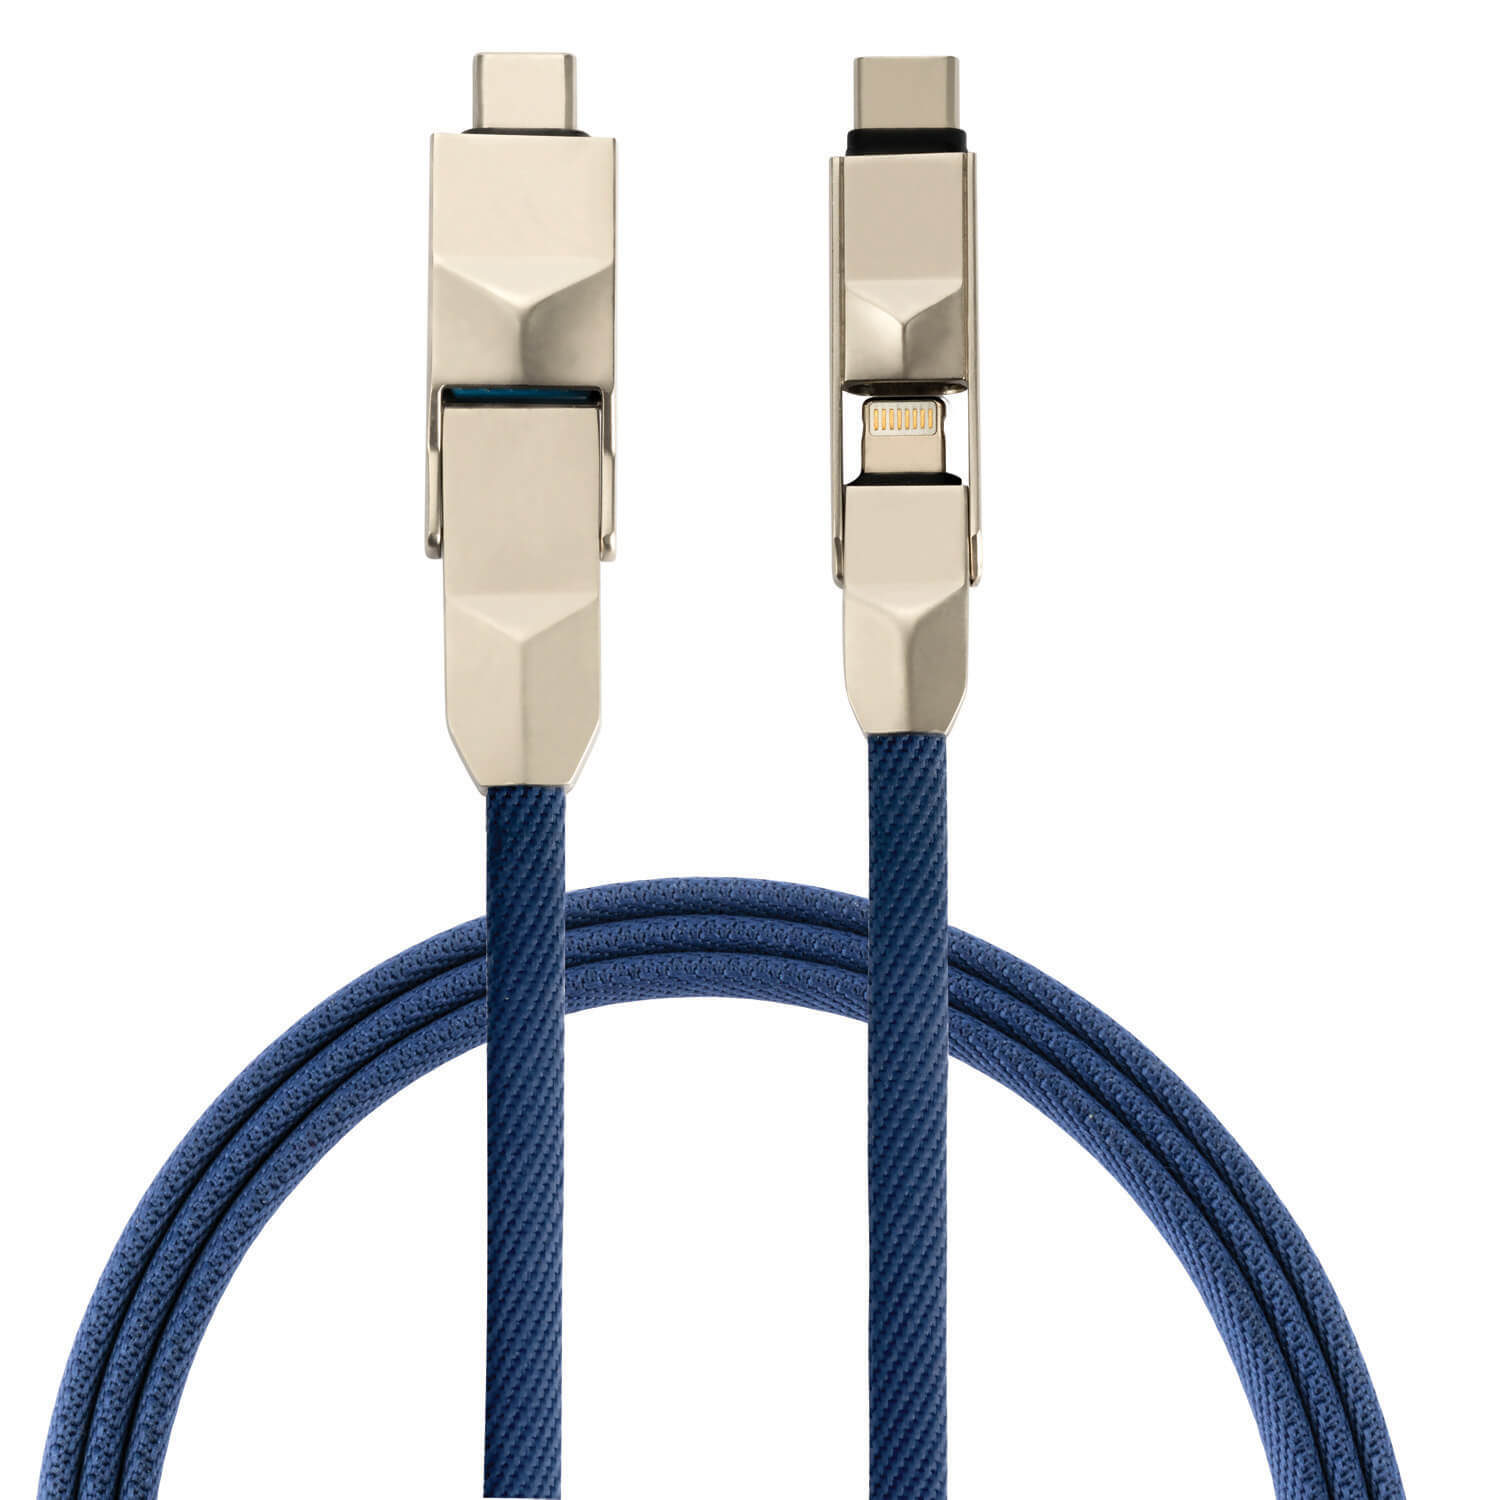 4smarts 6in1 ComboCord Cable with MicroUSB, Lightning and USB-C (blue)